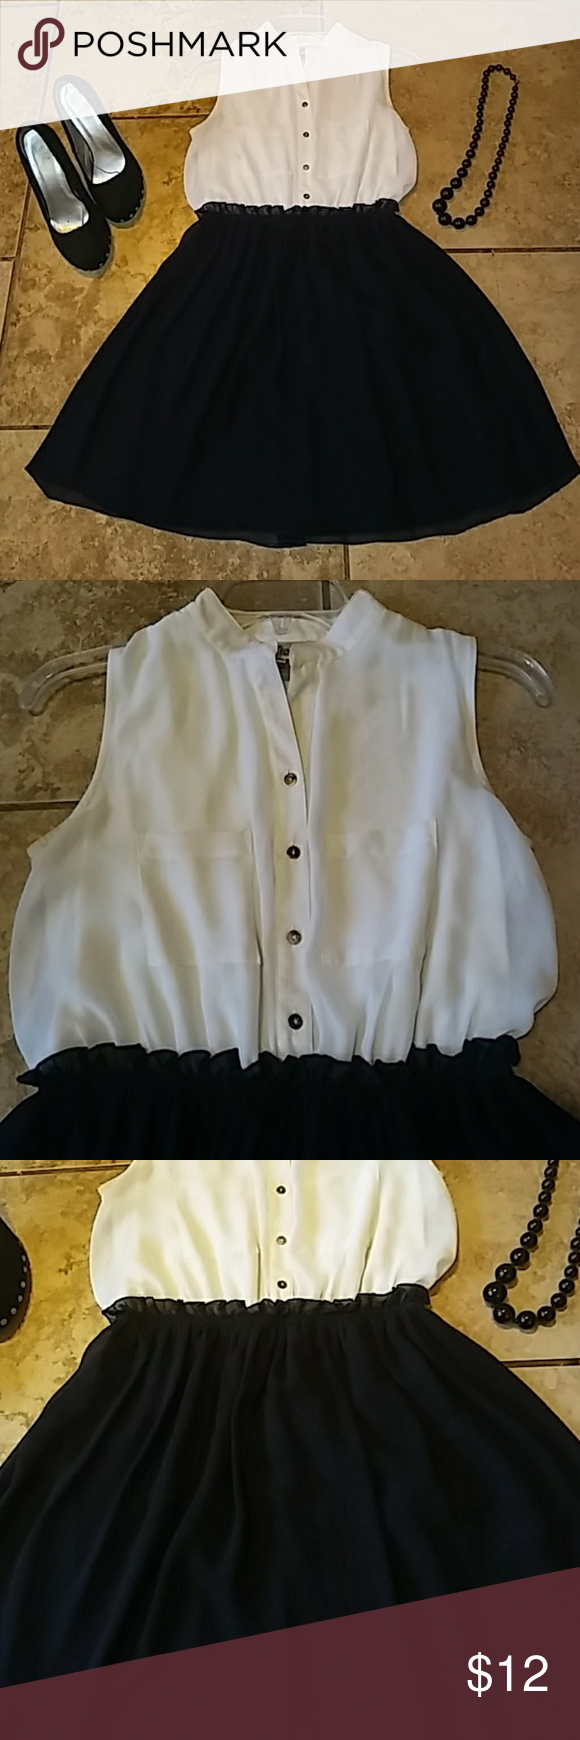 Sweet storm high waisted sleeveless dress sz.m Like new womens size m sleeveless high waisted sweet storm brand dress. It has pockets on the front and buttons. The high waist in stretchy and it has a built in slip. It is light cream and navy blue .so chic. Thanks I love to bundle and deal And shipping is super fast Sweetums Dresses Midi